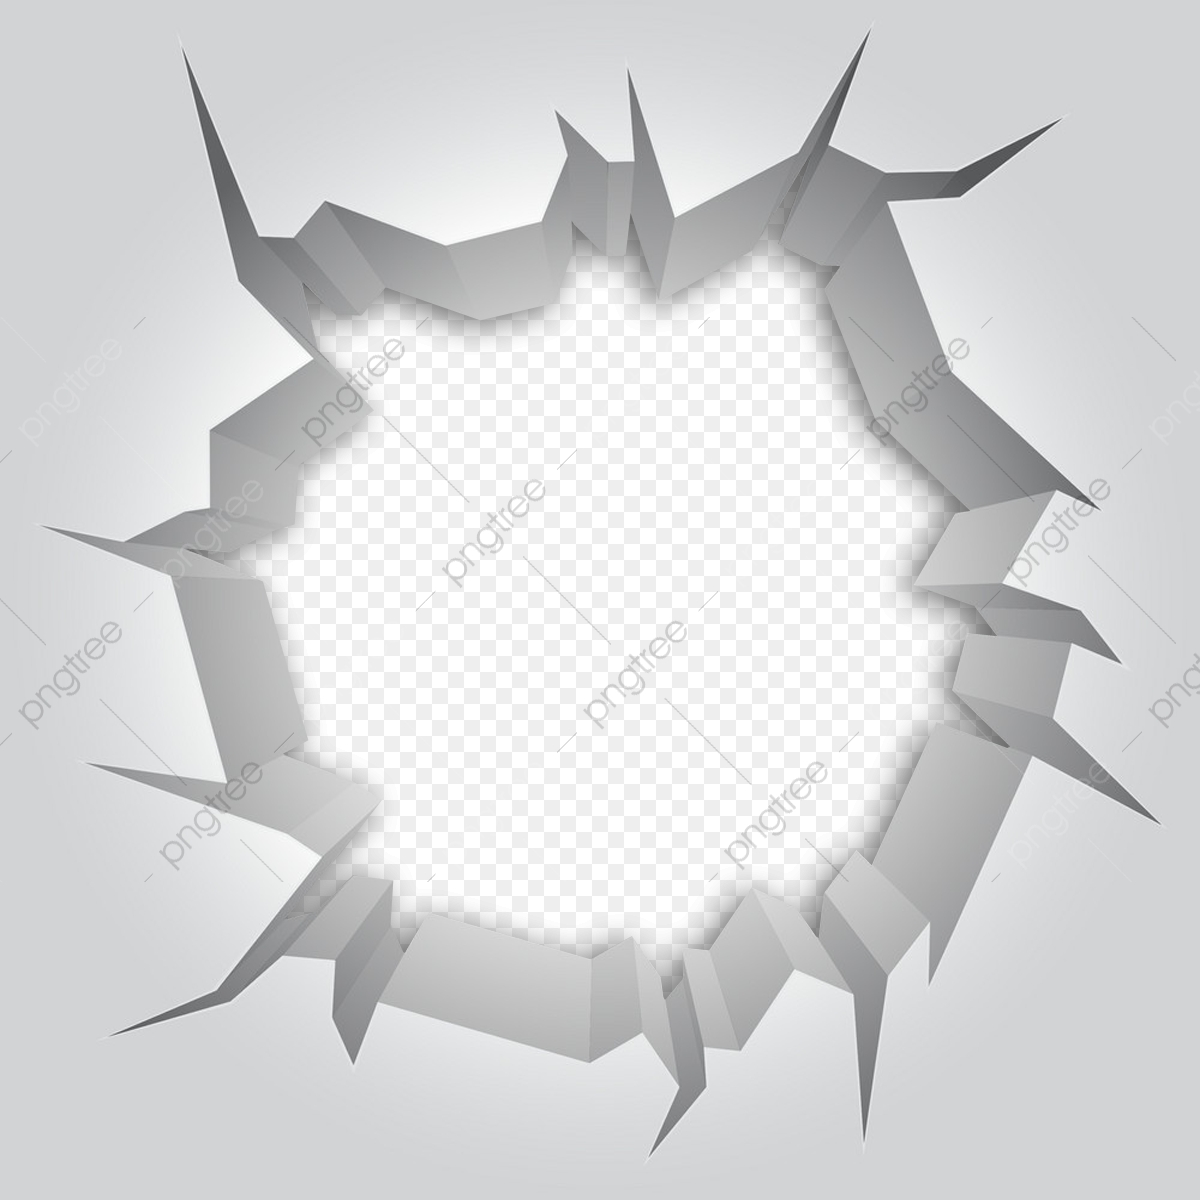 Wall Crack Wall Psd PNG Transparent Clipart Image And PSD